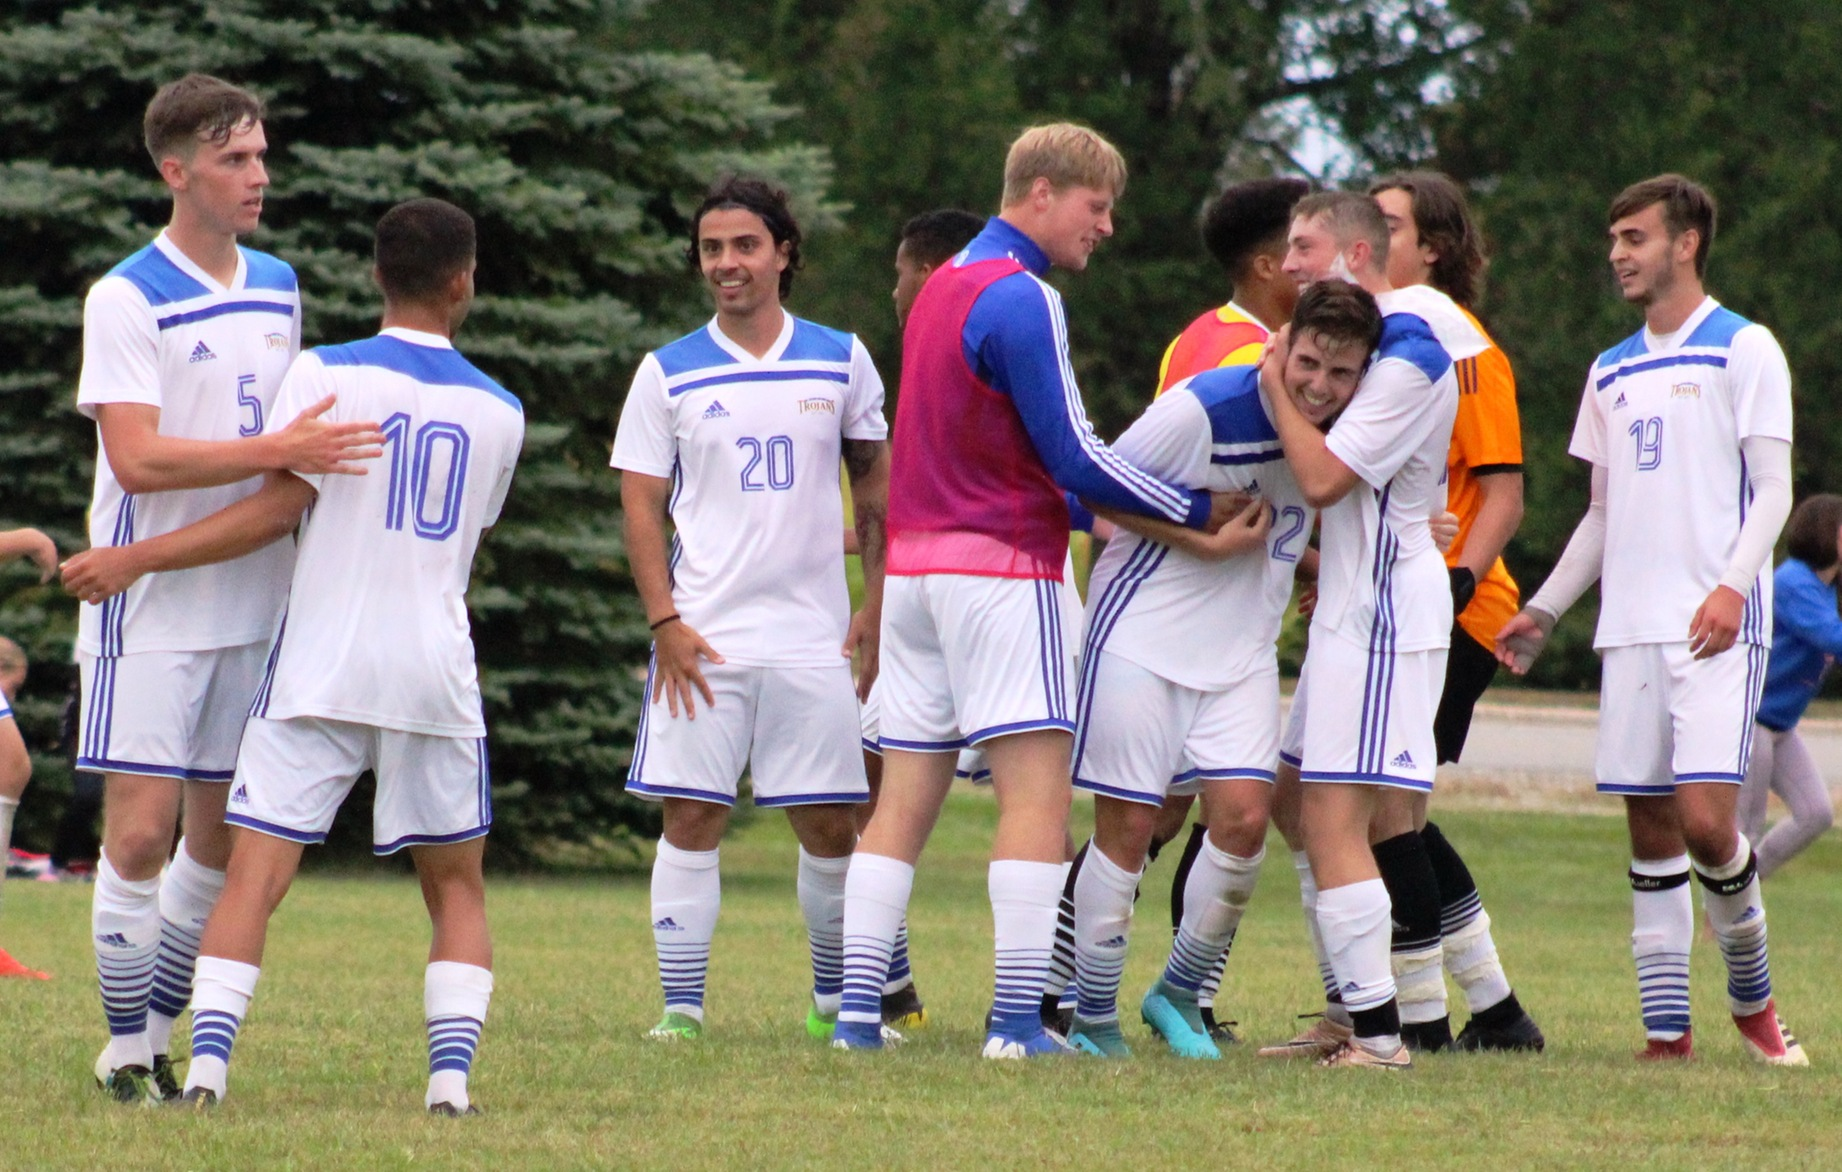 NIACC players celebrate after a hard-fought 2-1 win over Hawkeye CC on Saturday.